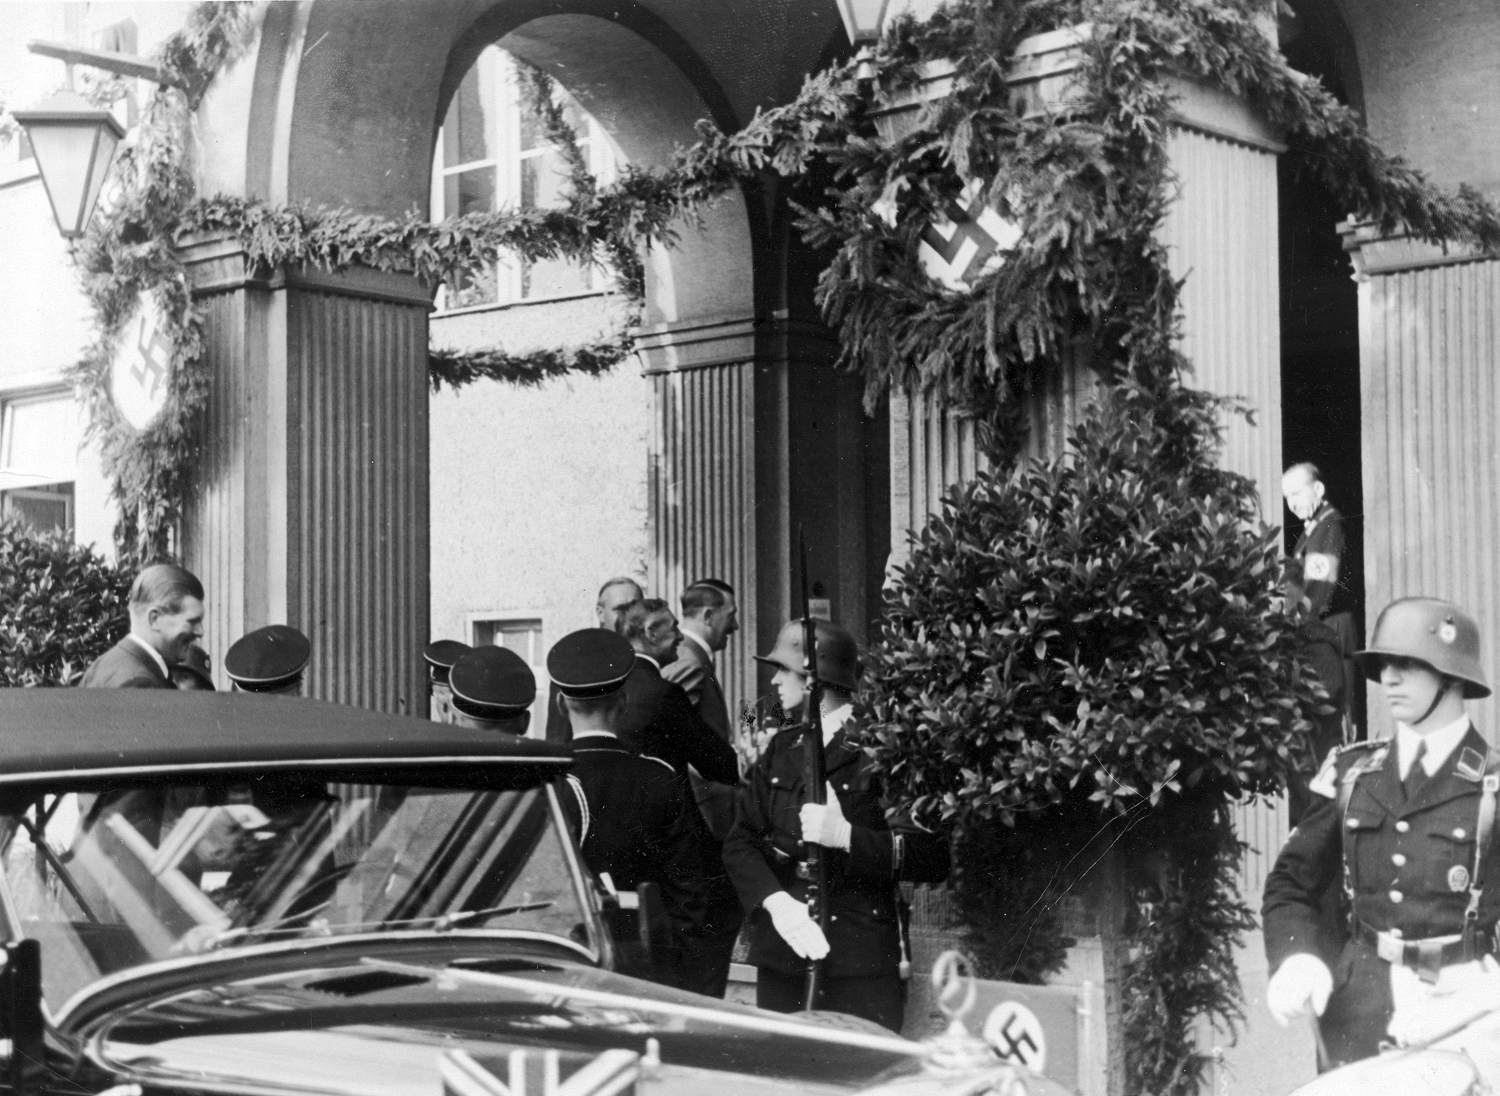 Adolf Hitler and Neville Chamberlain meet at the Hotel Rheinhotel Dreesen in Bad Godesberg